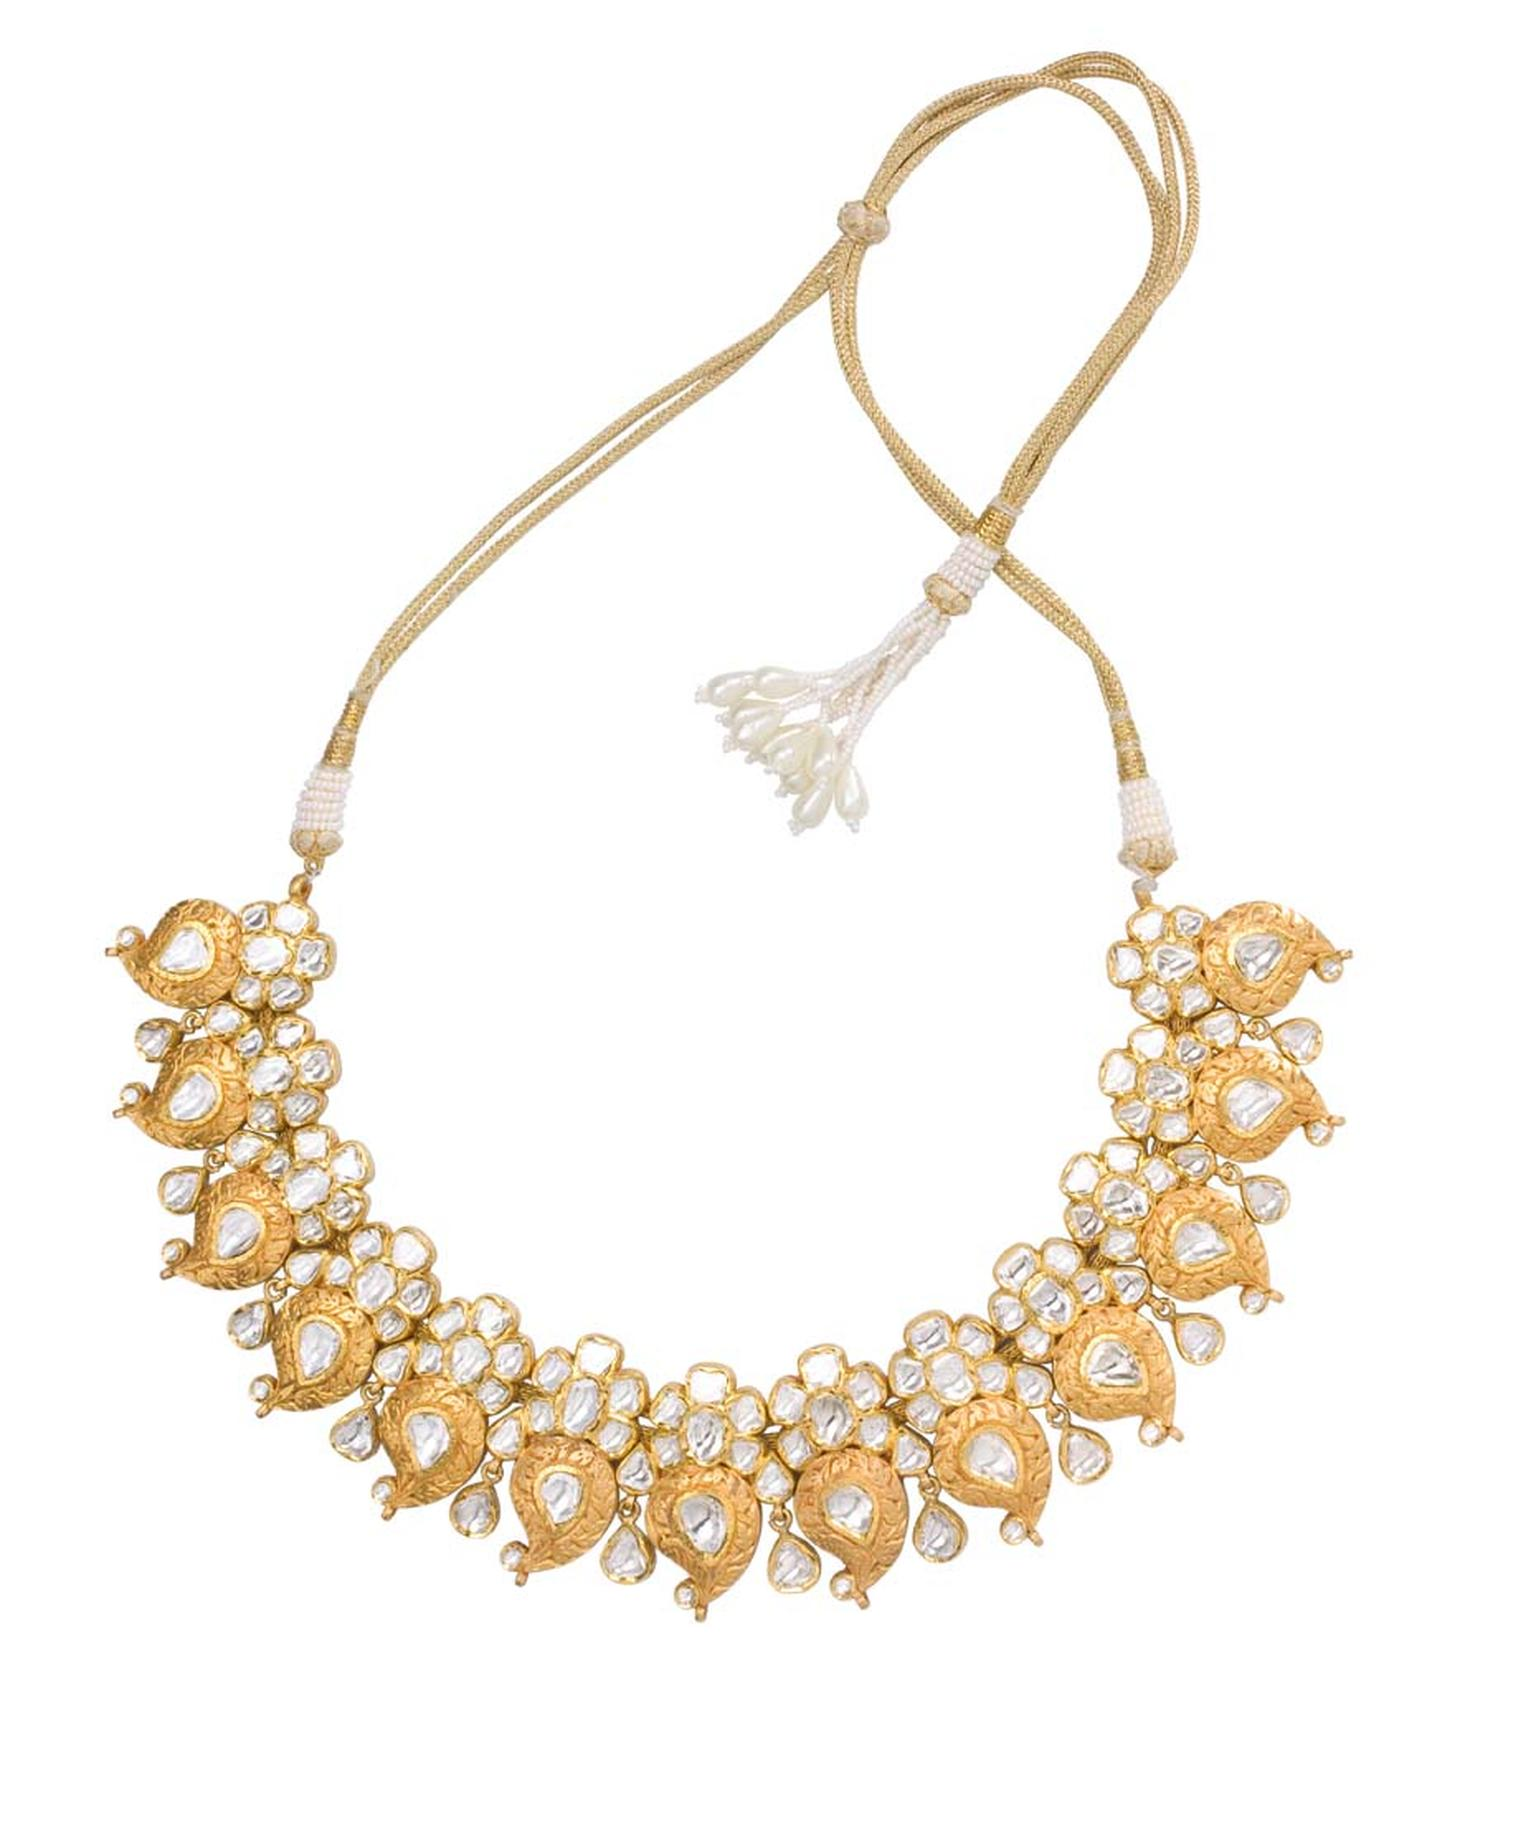 Sunita Shekhawat yellow gold Paisley necklace studded with uncut diamonds.